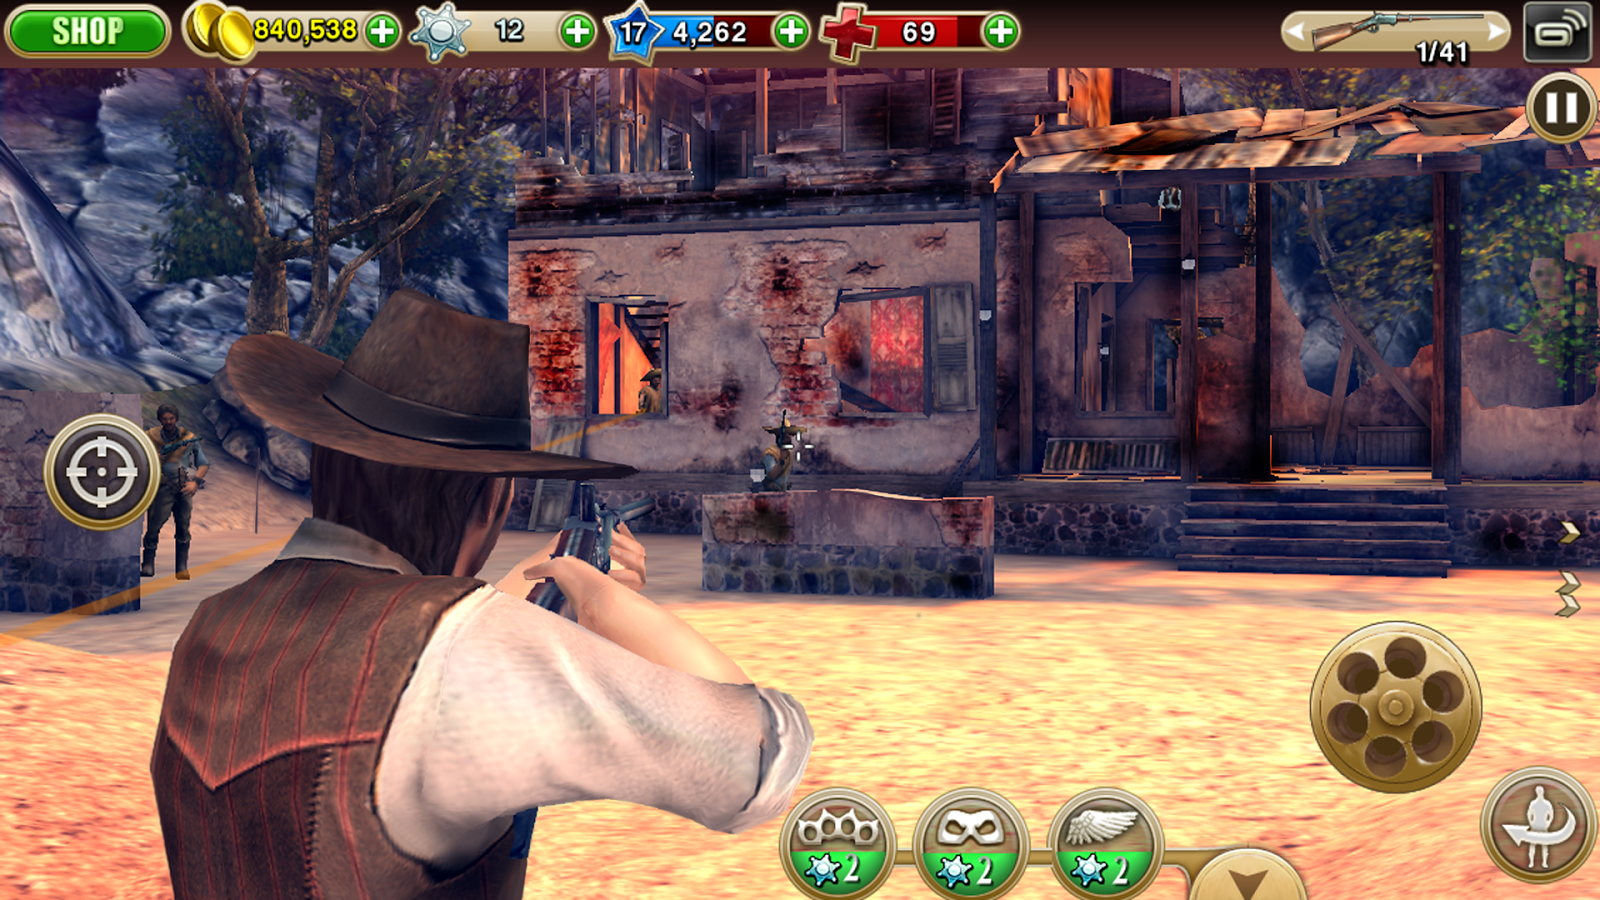 Six-Guns: Gang Showdown Screenshot 11